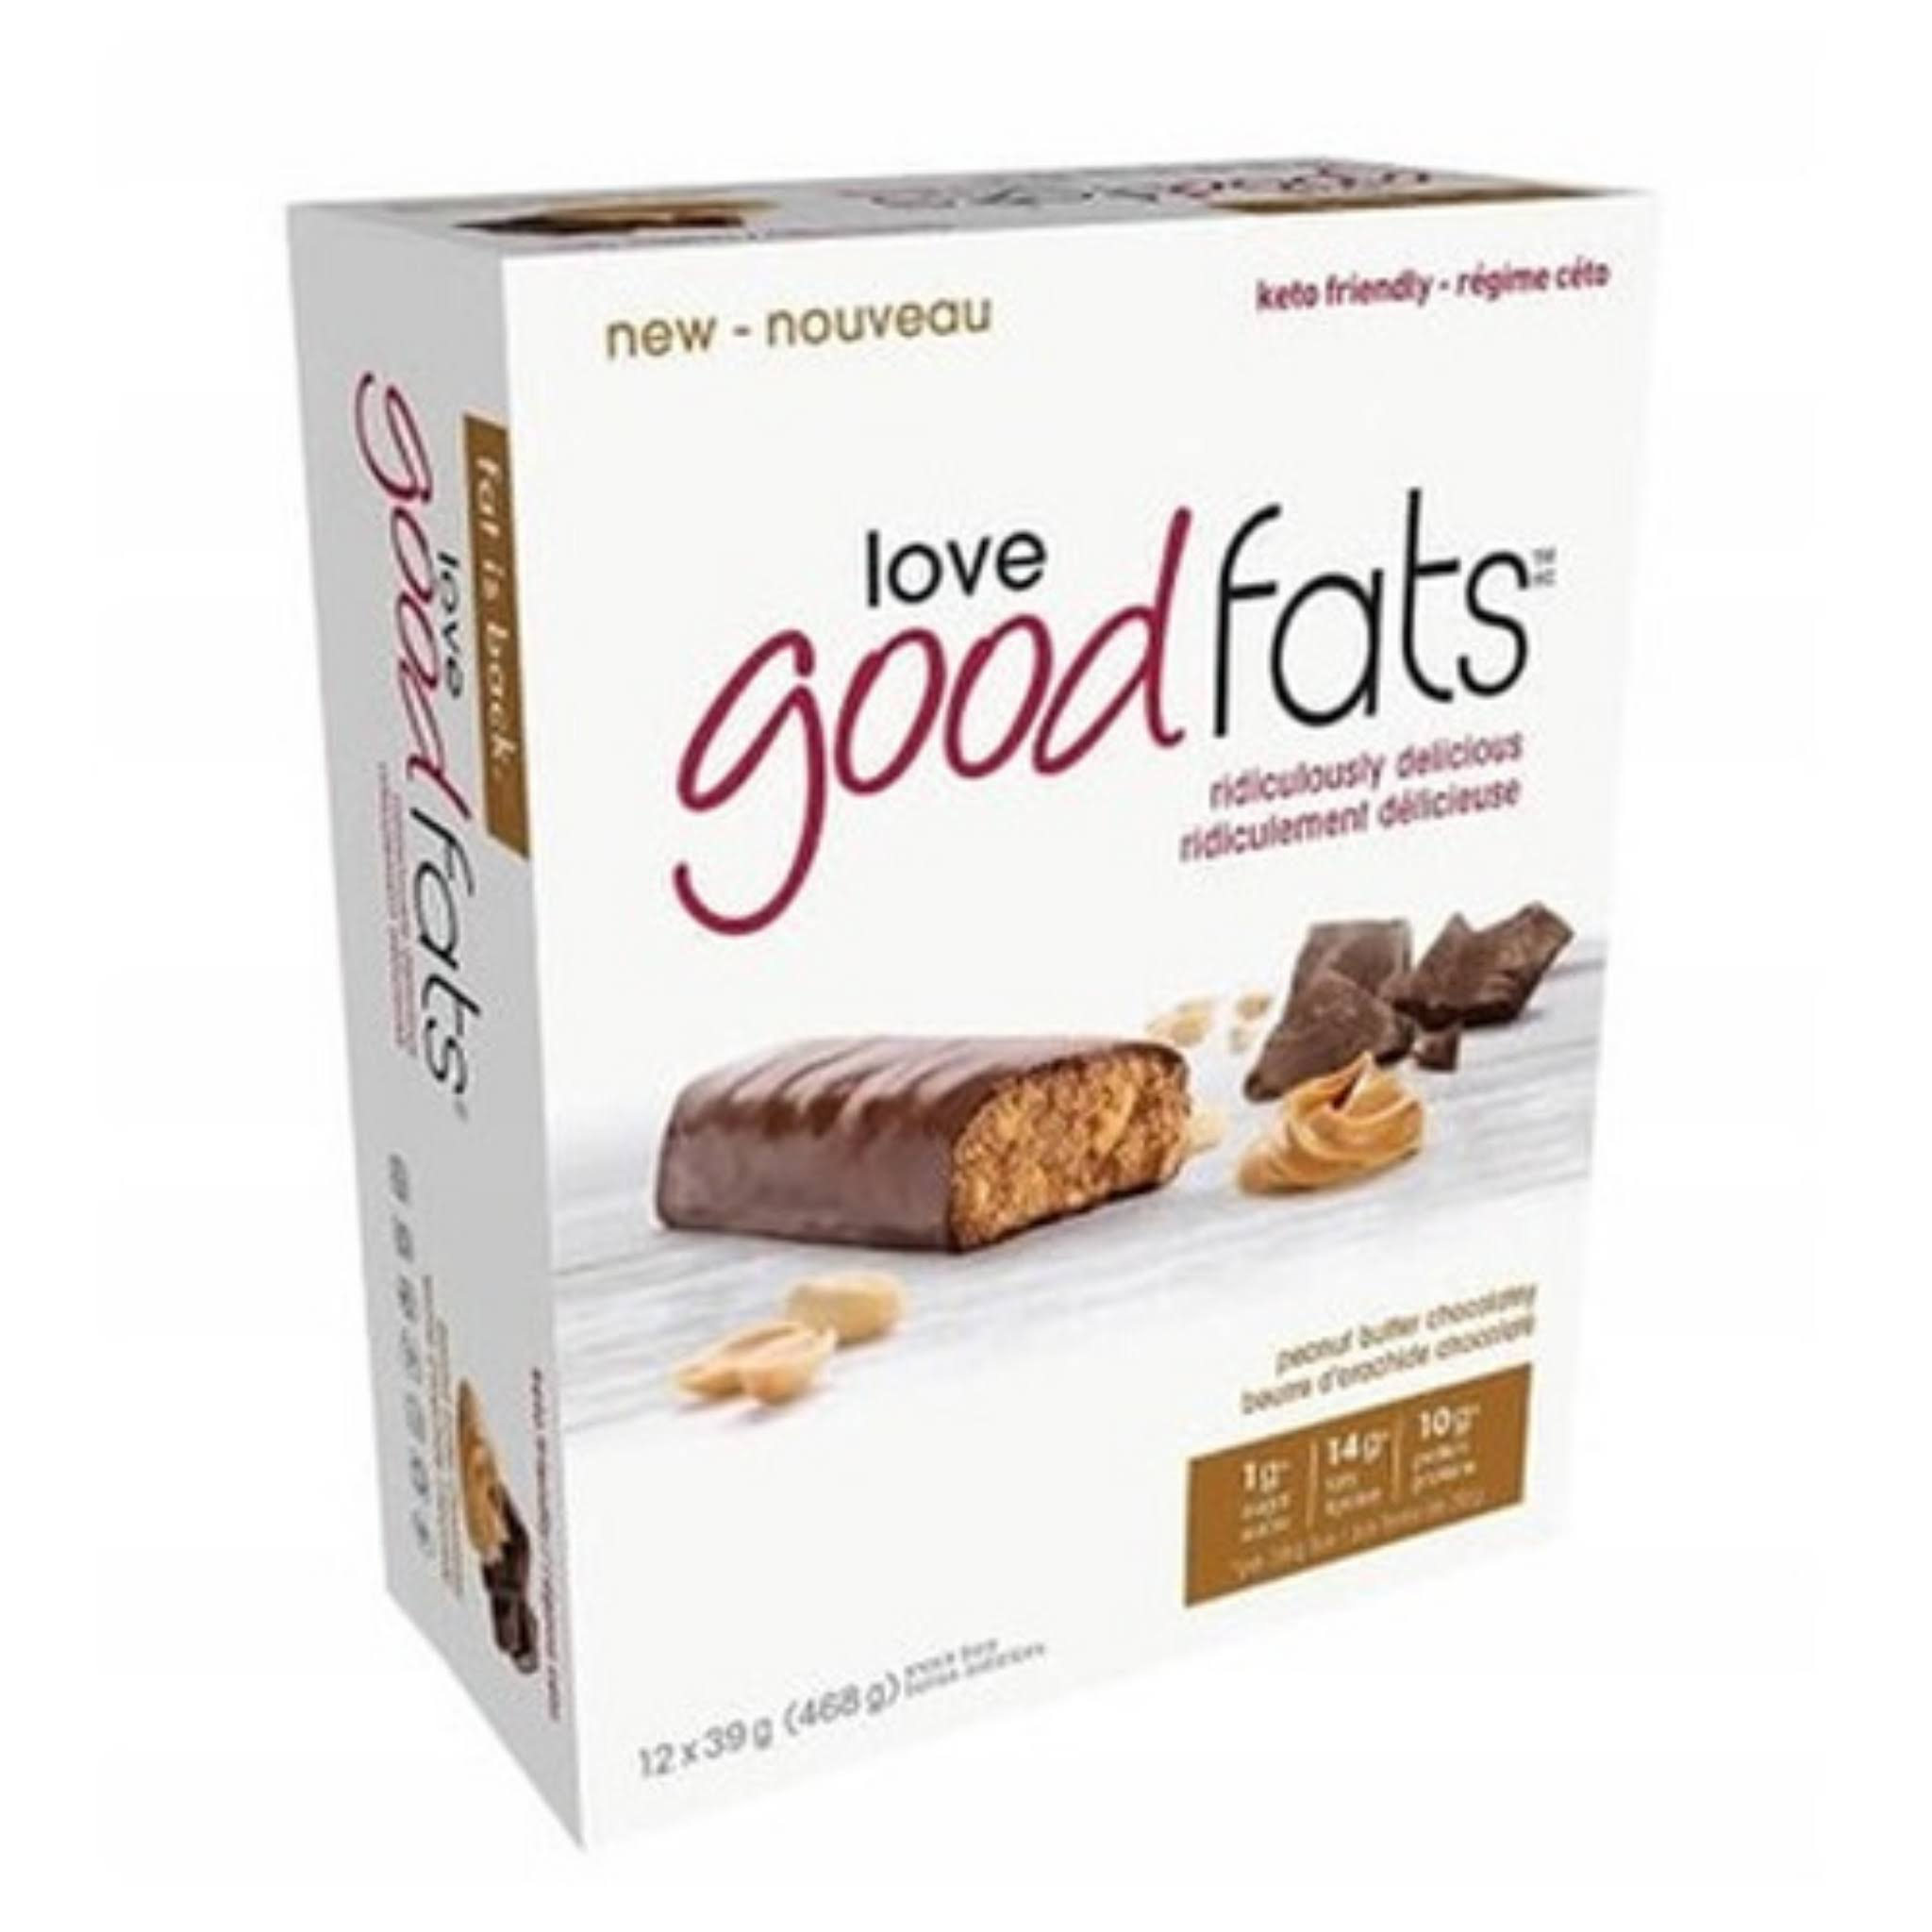 Love Good Fats Peanut Butter Choc Snack Bar 12x39g